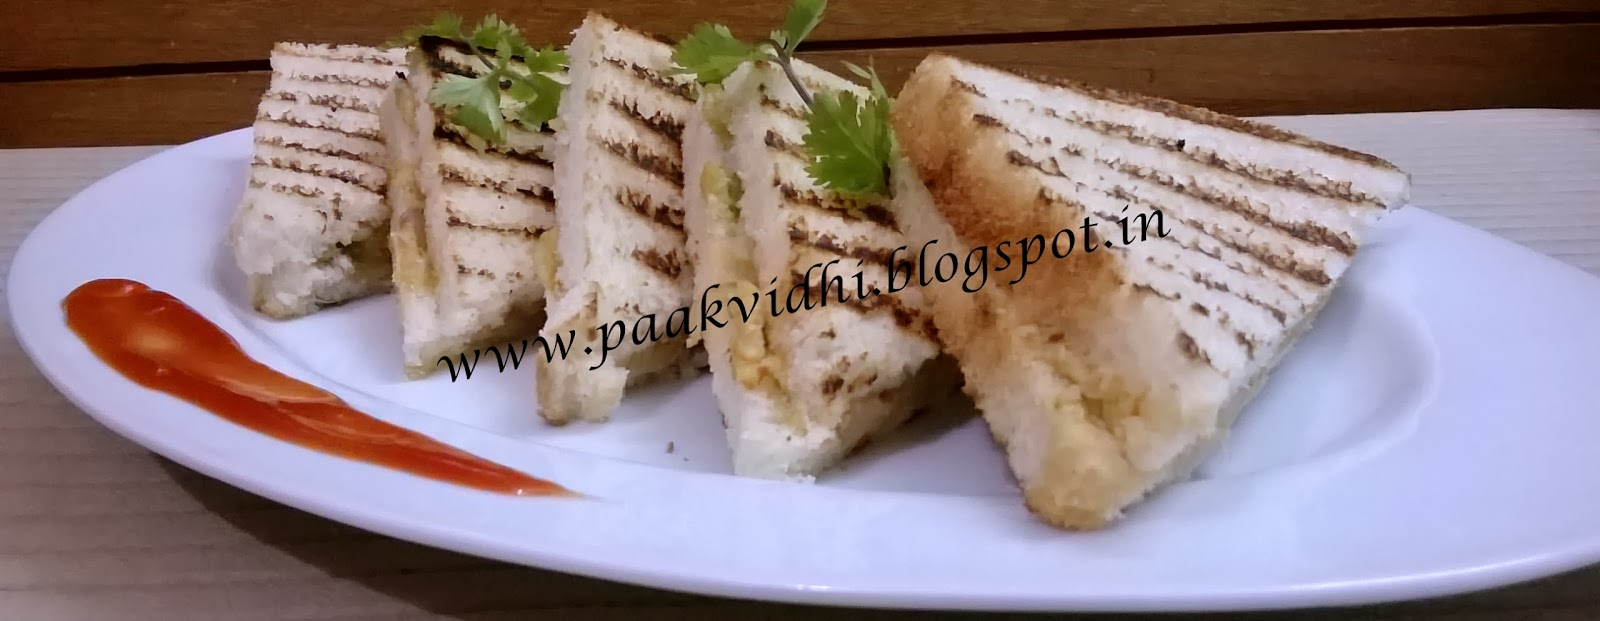 http://paakvidhi.blogspot.in/2014/01/cheese-capsicum-samdwitch.html